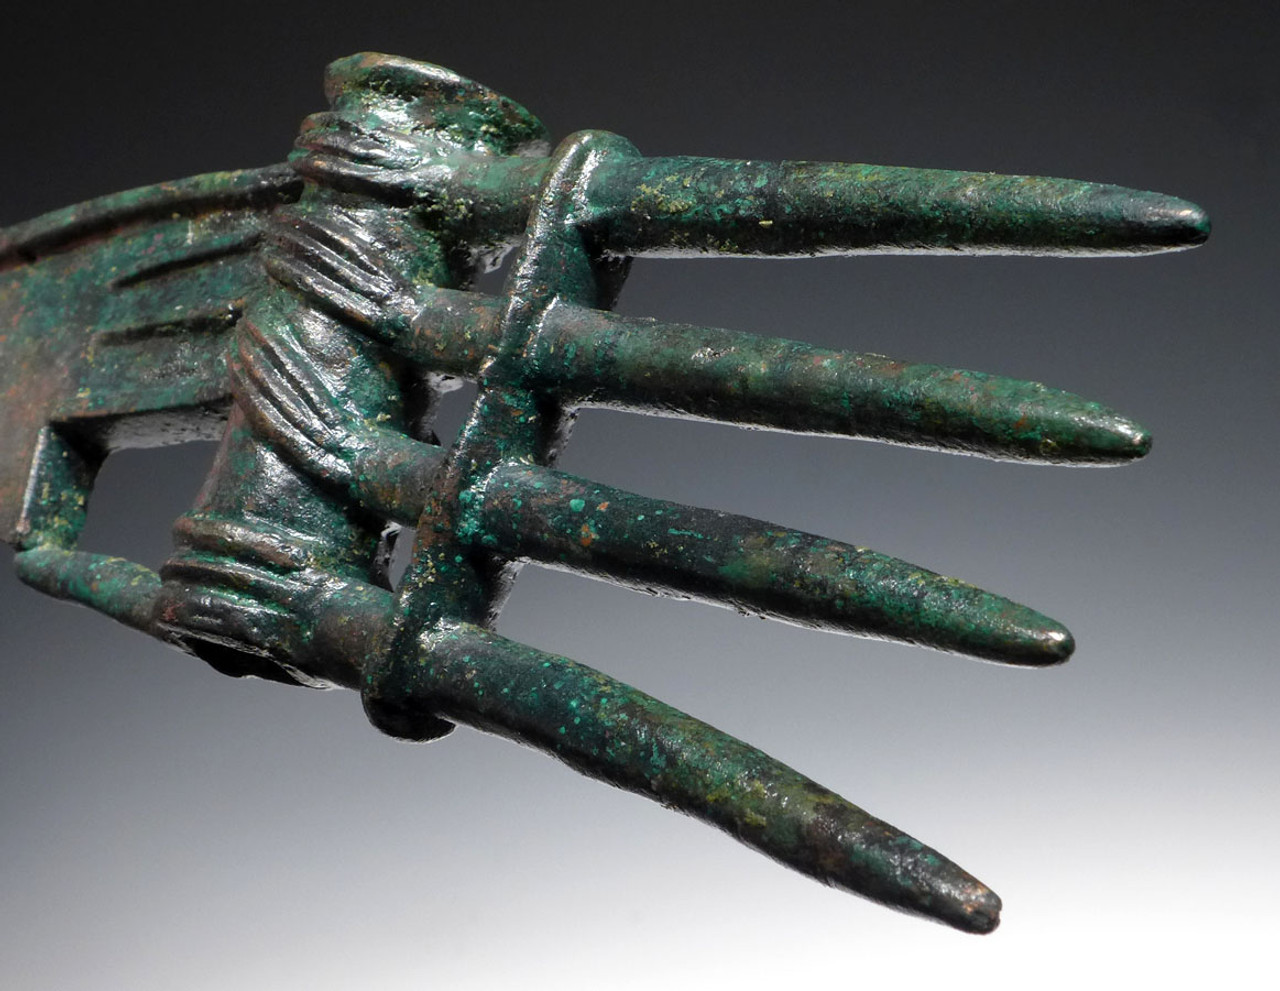 NEPC001  - RARE LARGE ANCIENT BRONZE DECORATED SPIKED WAR AXE FROM THE NEAR EASTERN LURISTAN CULTURE